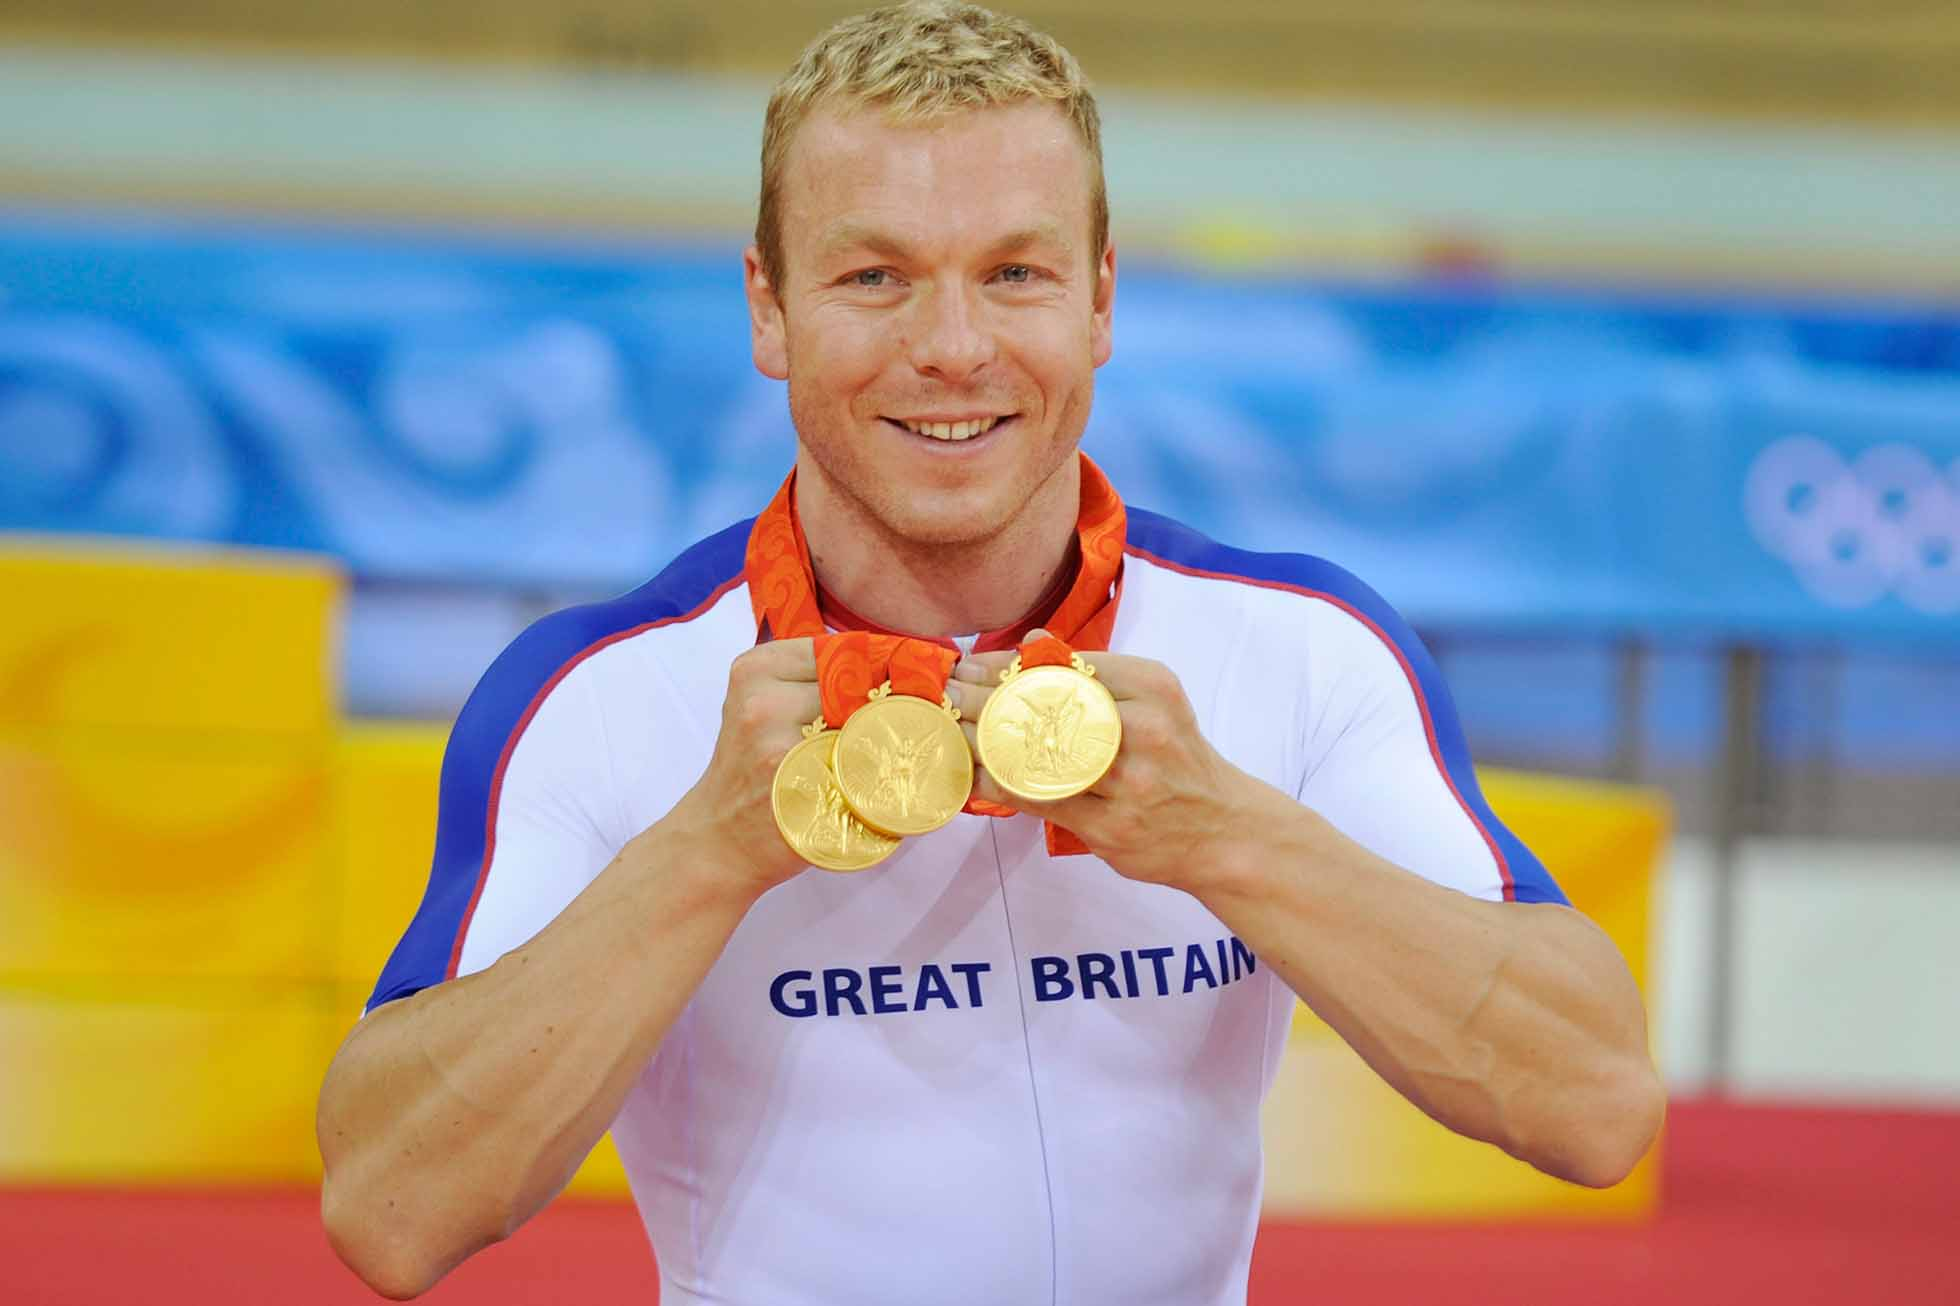 Chris Hoy (GBR) with the three gold medals he won in cycling at the games at the Summer Olympic Games in Beijing China 19th August 2008. (Photo by David Ashdown/Getty Images)